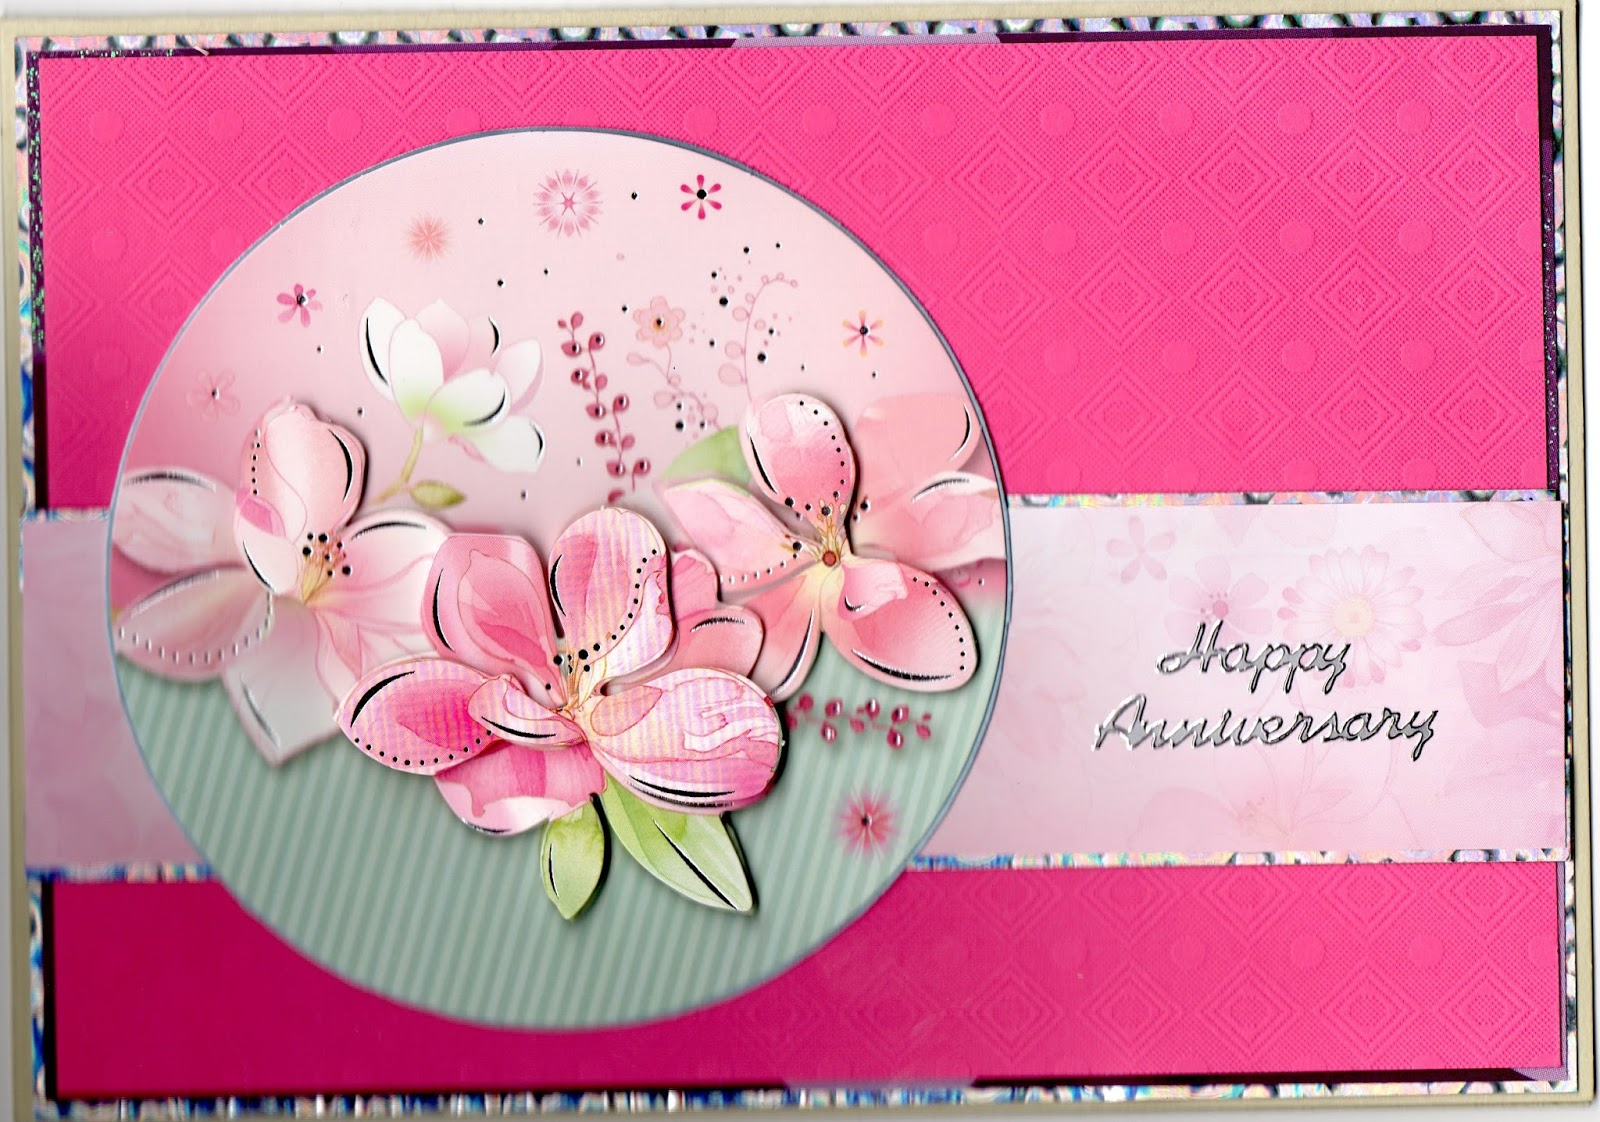 Filovescrafting: busy week crafting anniversary cards christmas